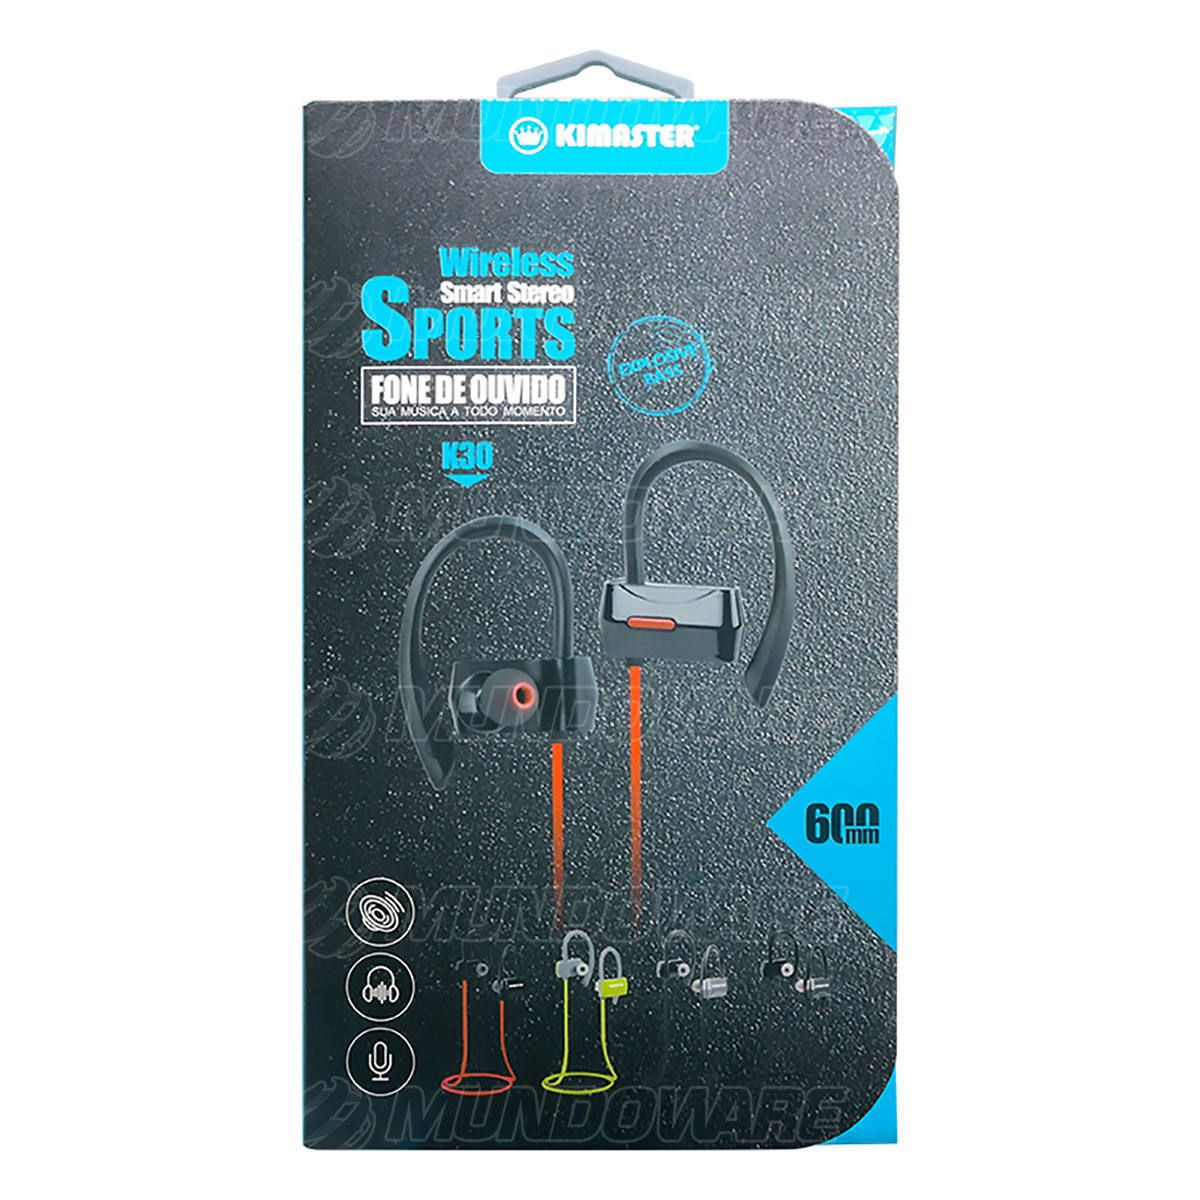 Fone Esportivo Bluetooth 5.0 Wireless Smart Stereo Sports com Áudio HD e Microfone Kimaster K30